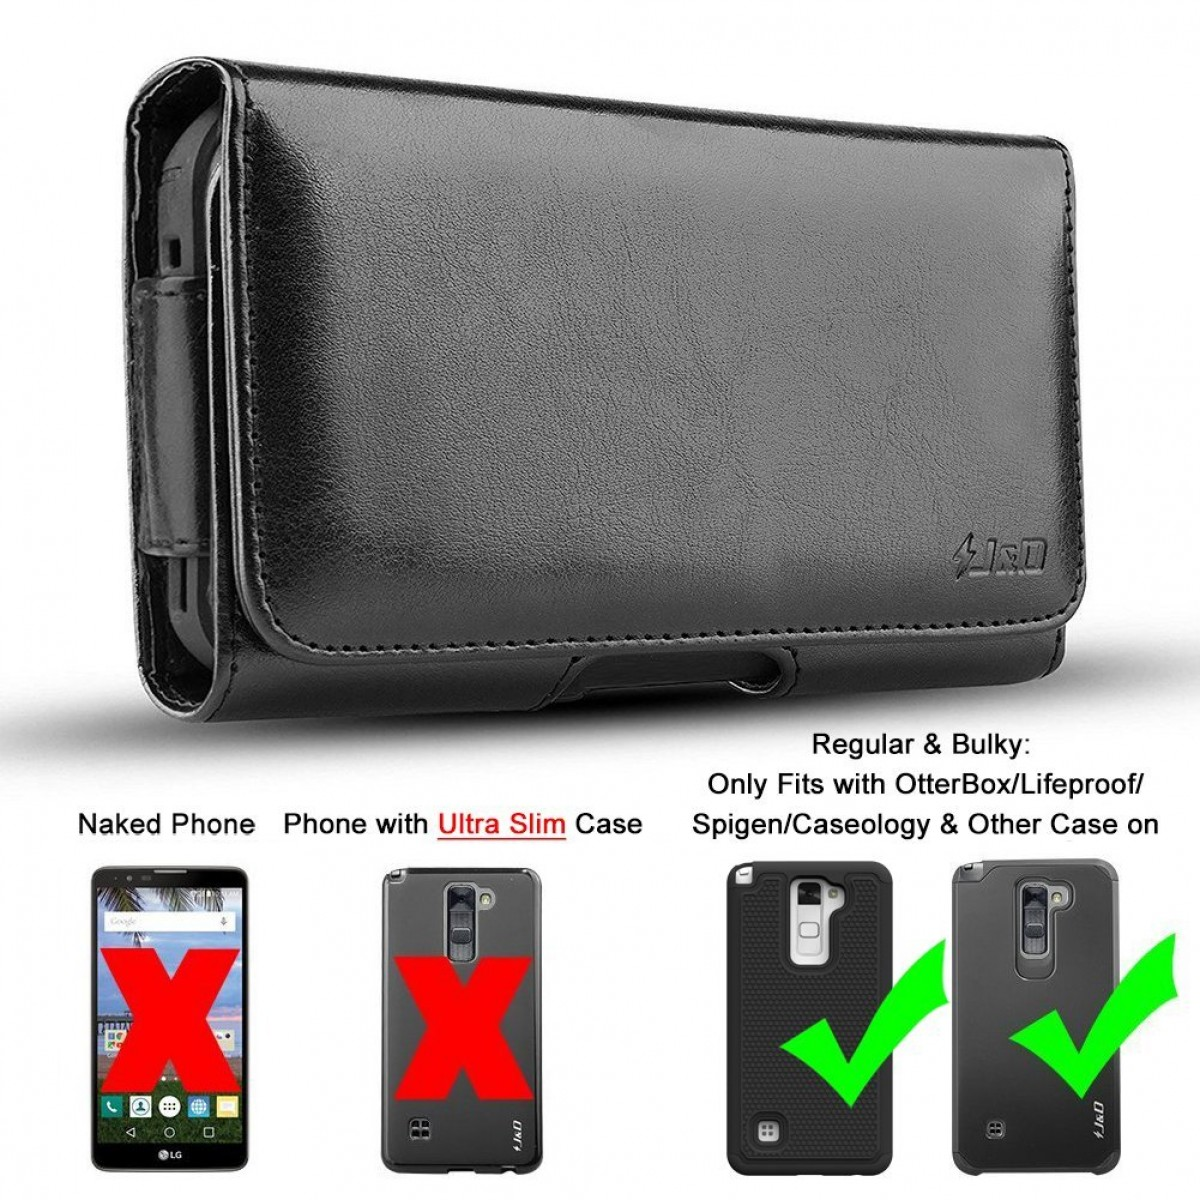 new product 64cbe 42a49 LG Stylo 2 Holster, JandD PU Leather Holster Pouch Case with Belt Clip,  Leather ID Wallet Case for LG Stylo 2 (Only Fits with ...